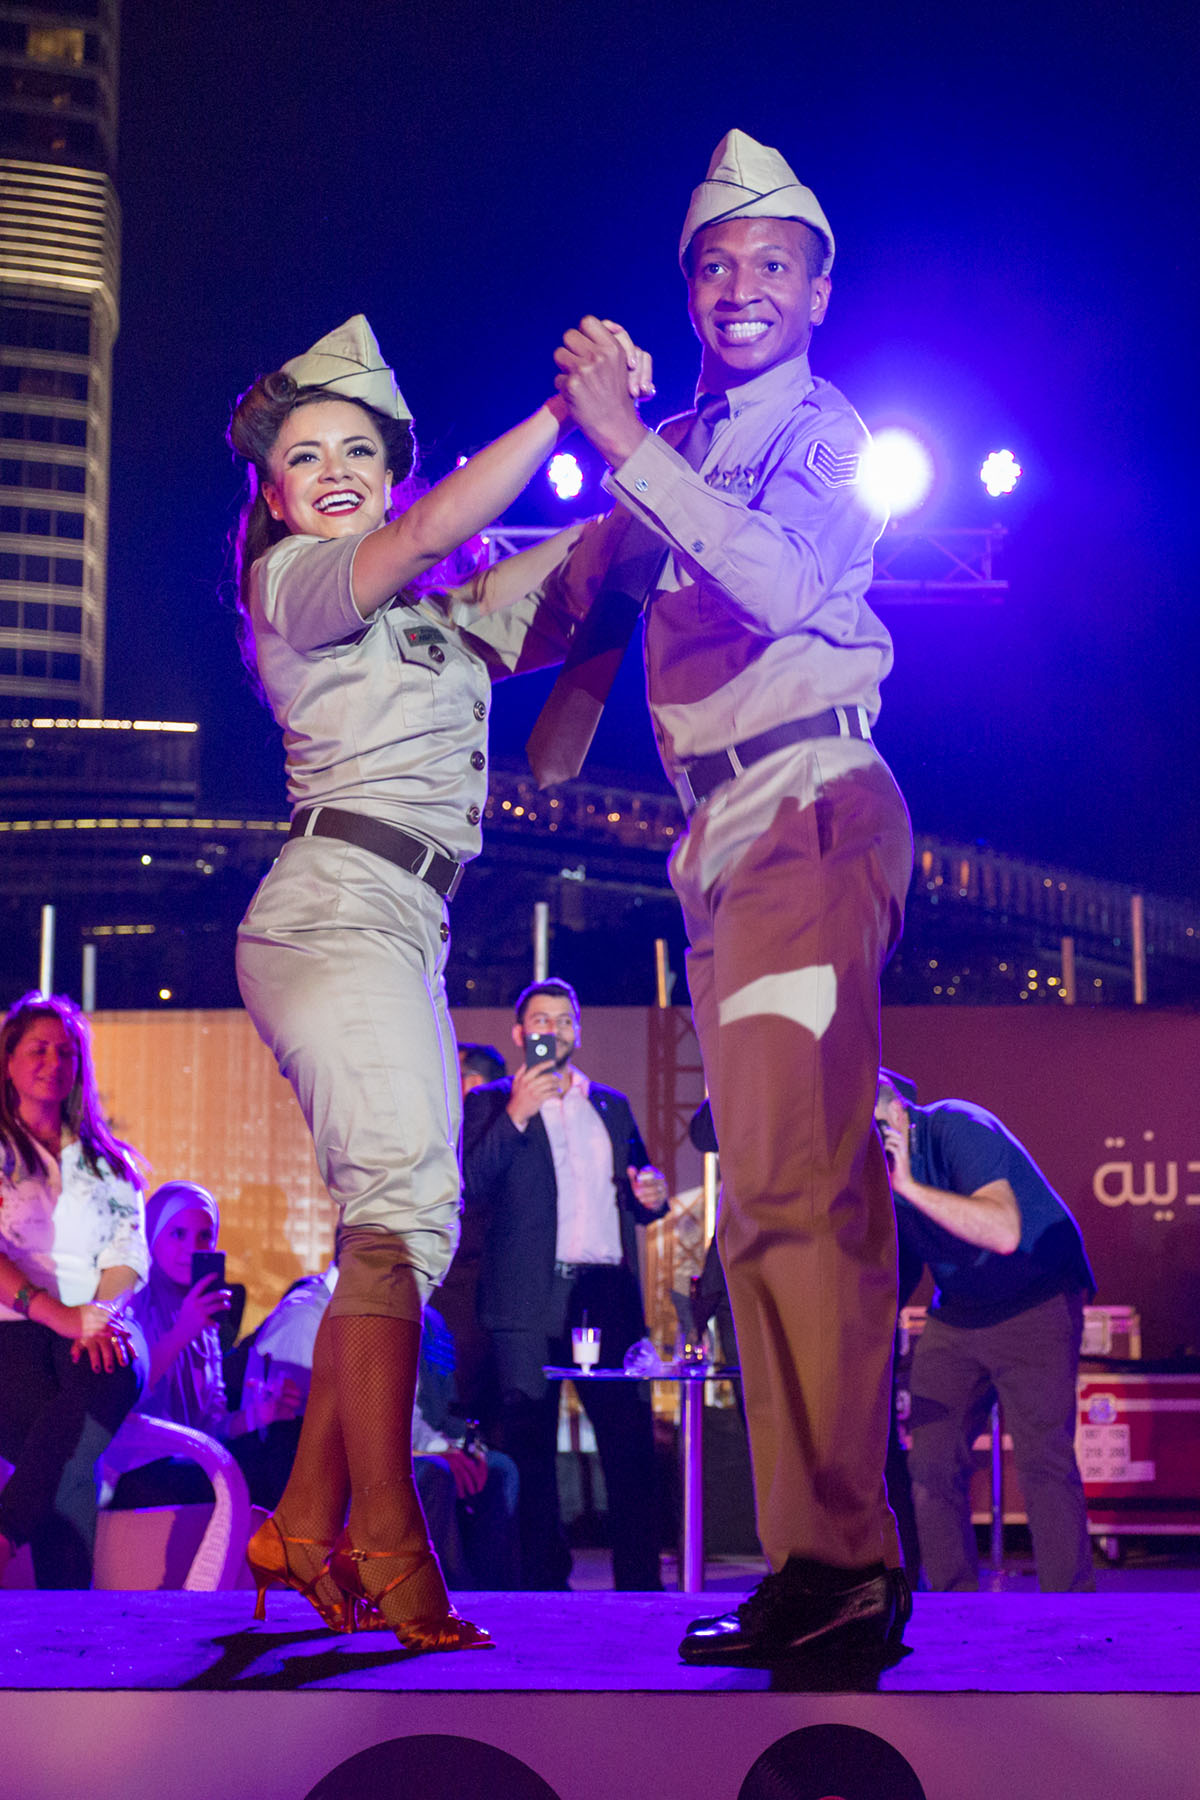 Dancers at the Dubai Opera House event by Loesje Kessels Fashion Photographer